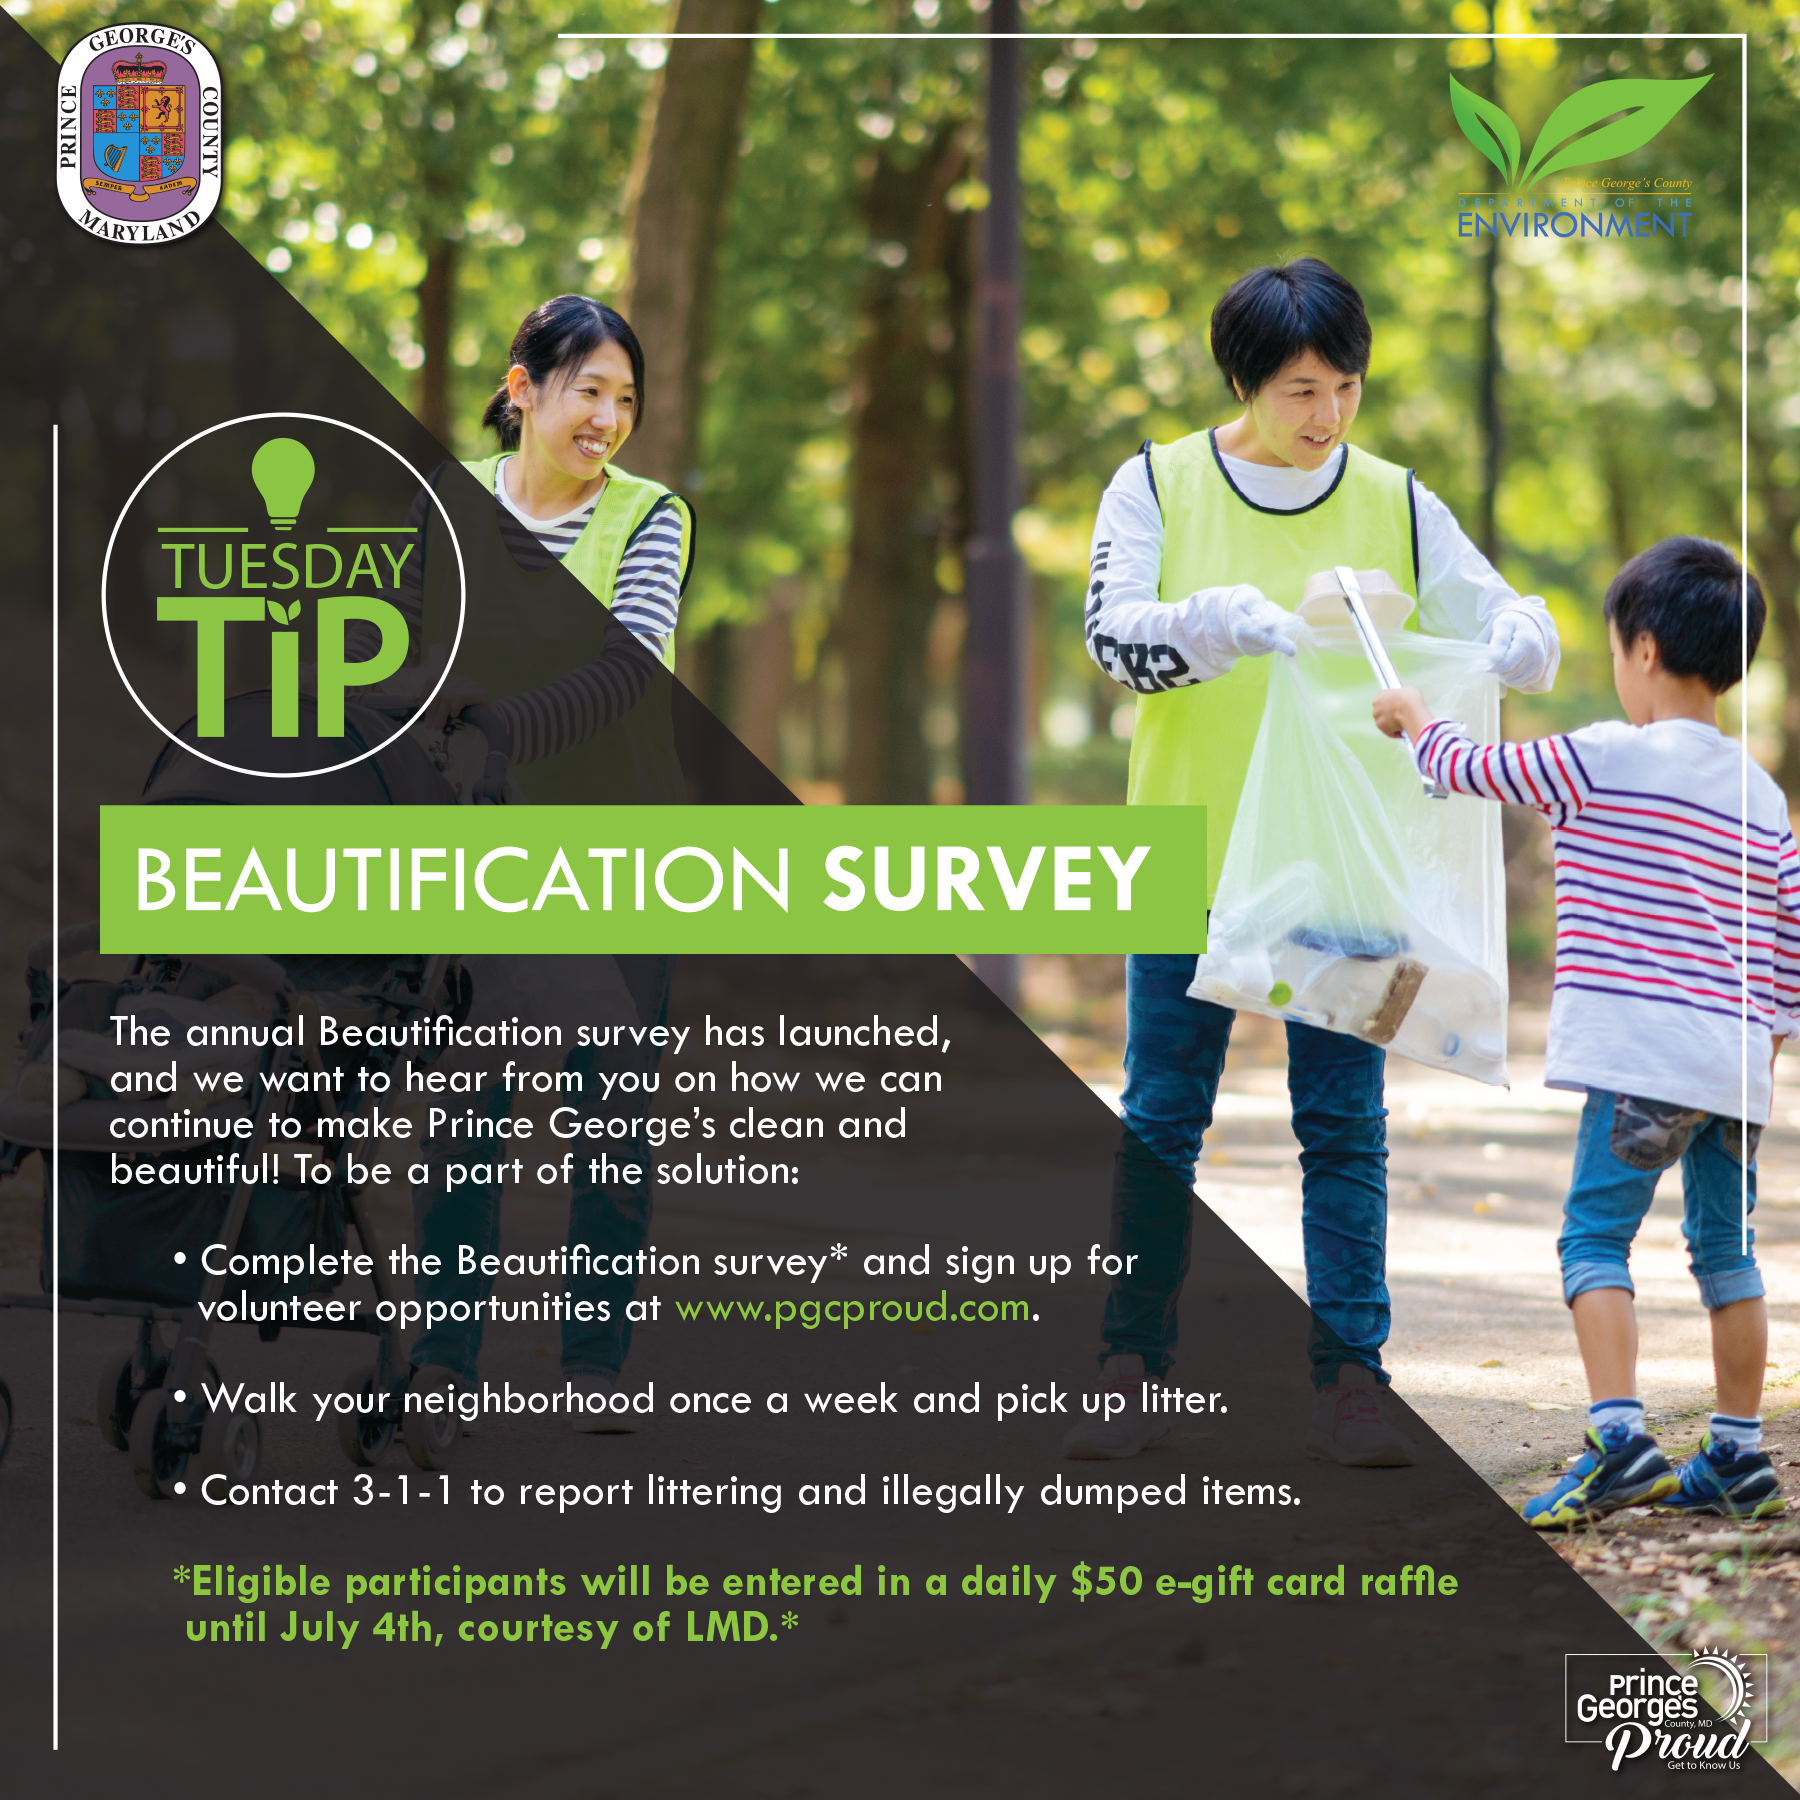 Tues tip 6.22.21 BeautificationSurvey eng